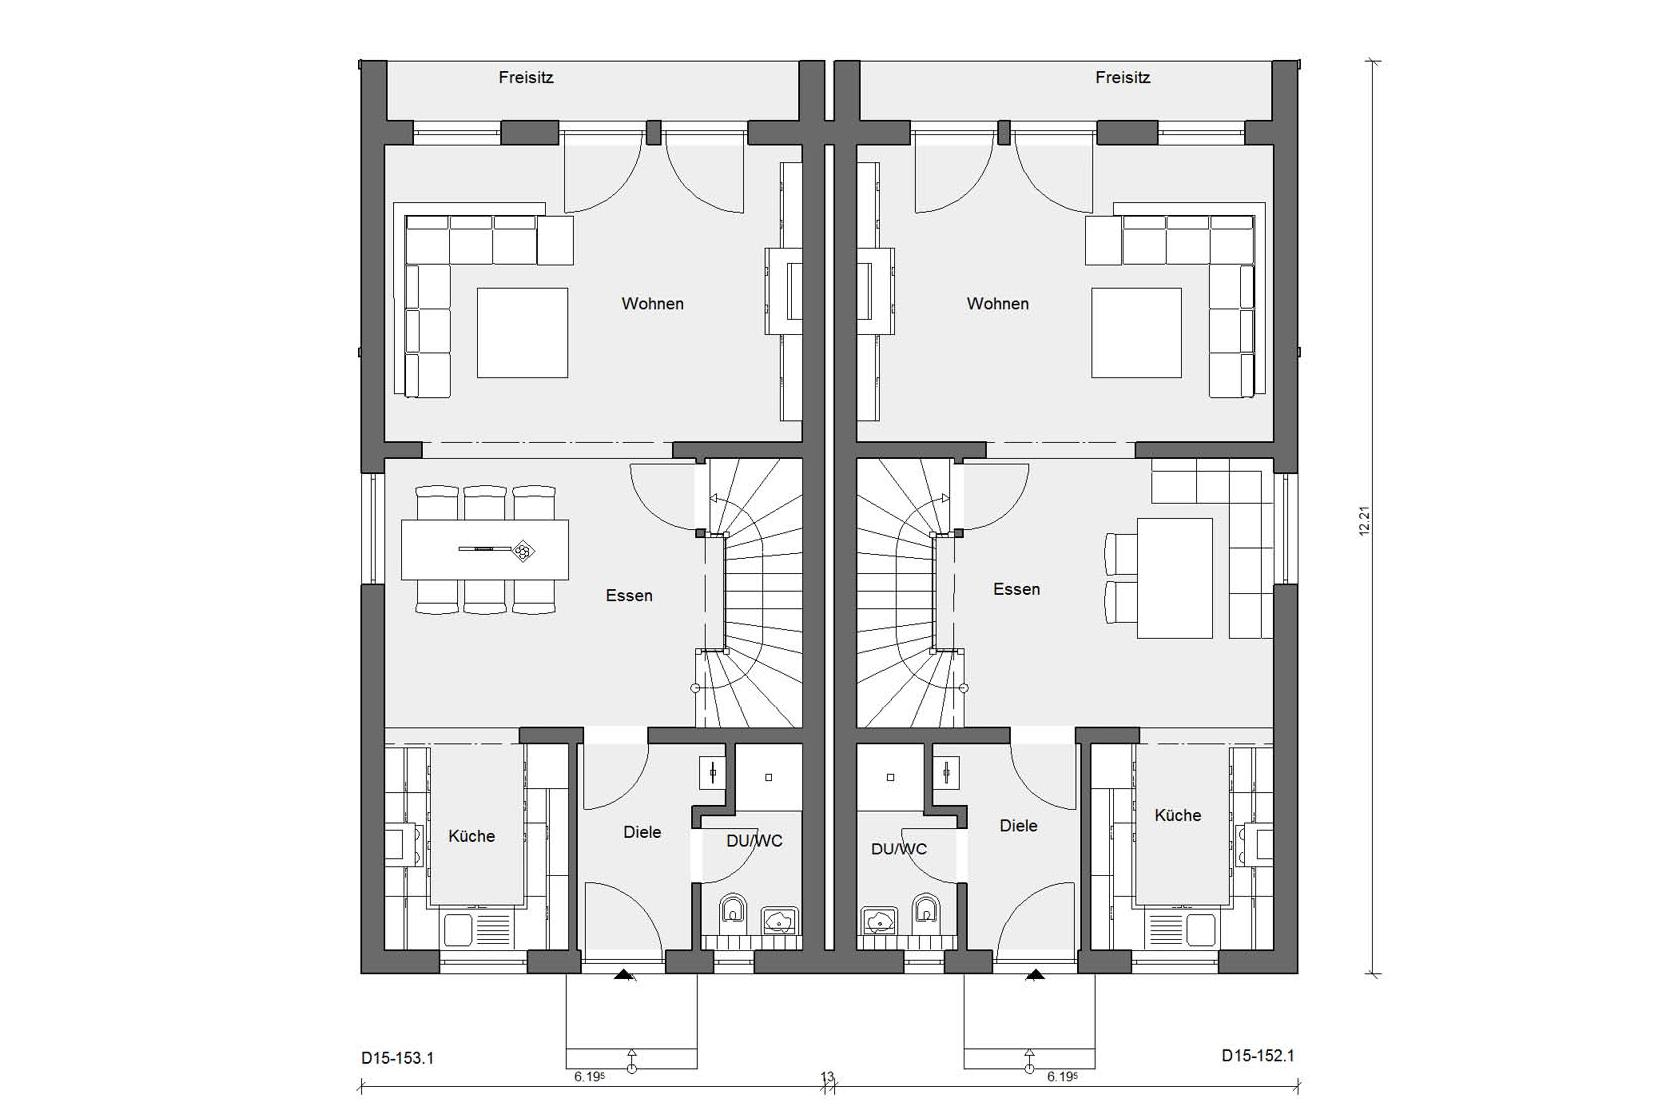 Floor plan ground floor D 15-153.1 / D 15-152.1 Modern semi-detached house